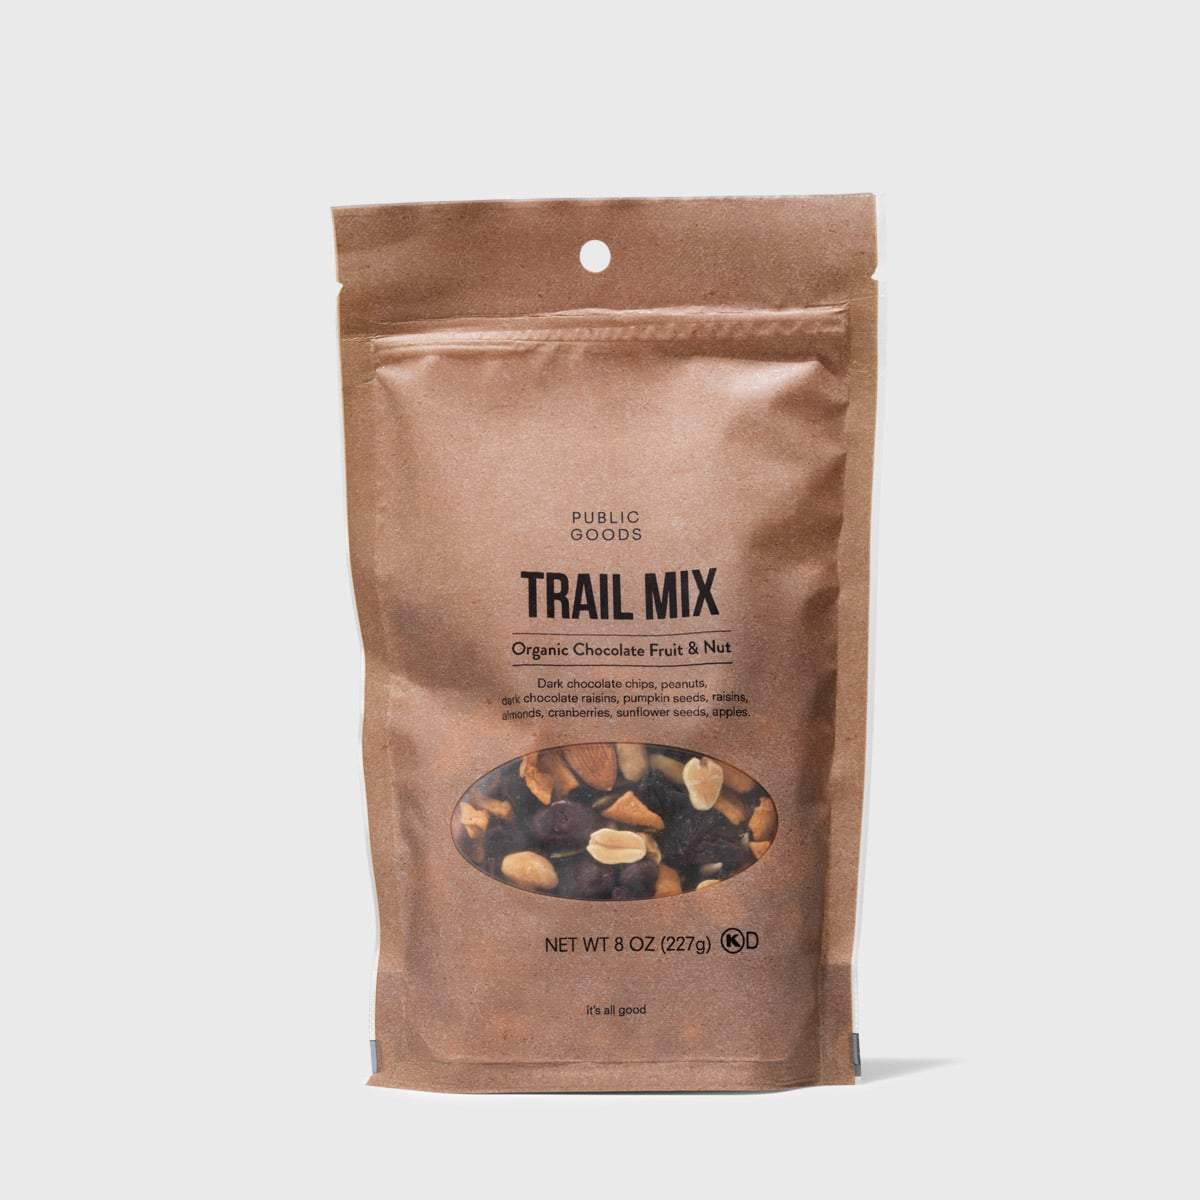 bag of public goods organic chocolate fruit and nut trail mix